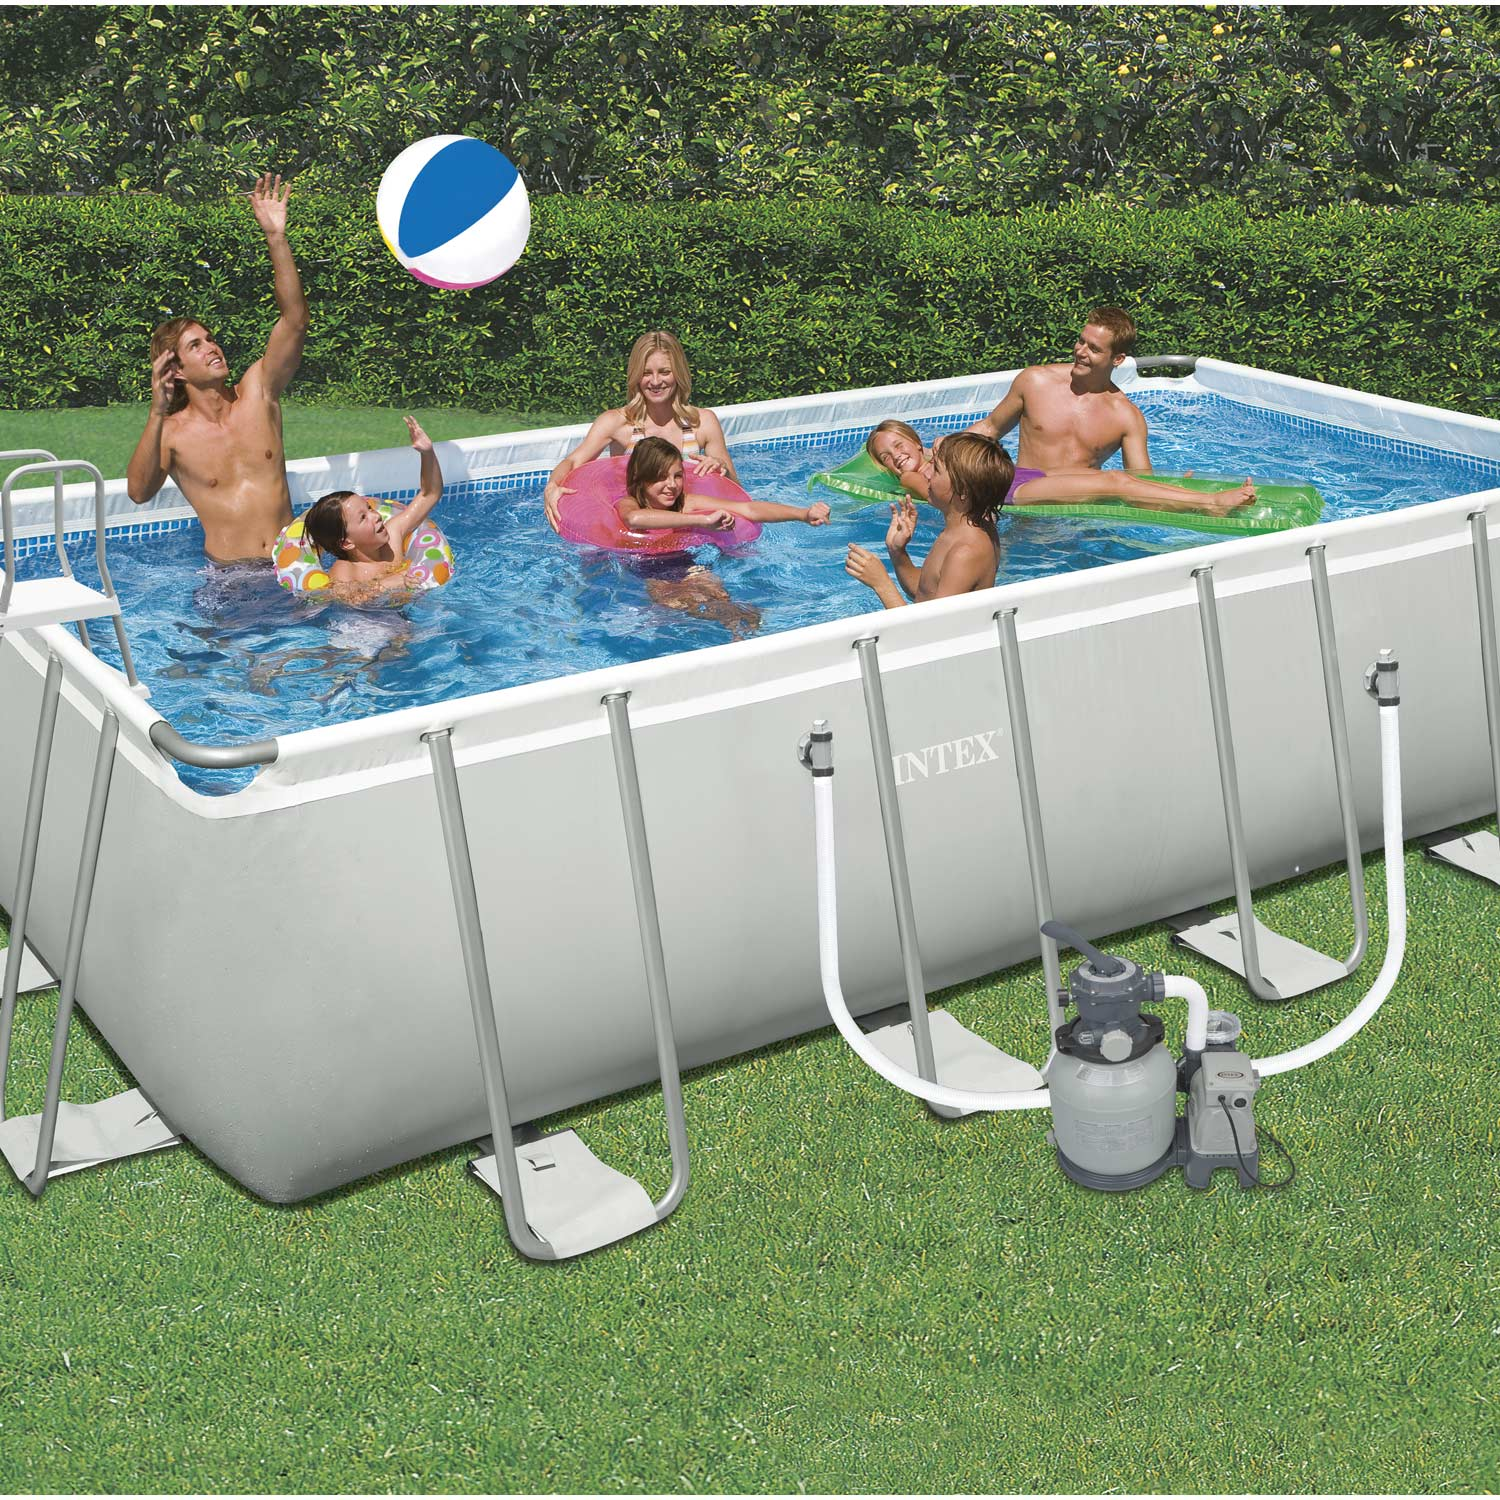 Piscine hors sol autoportante tubulaire intex l x l for Piscine en sol